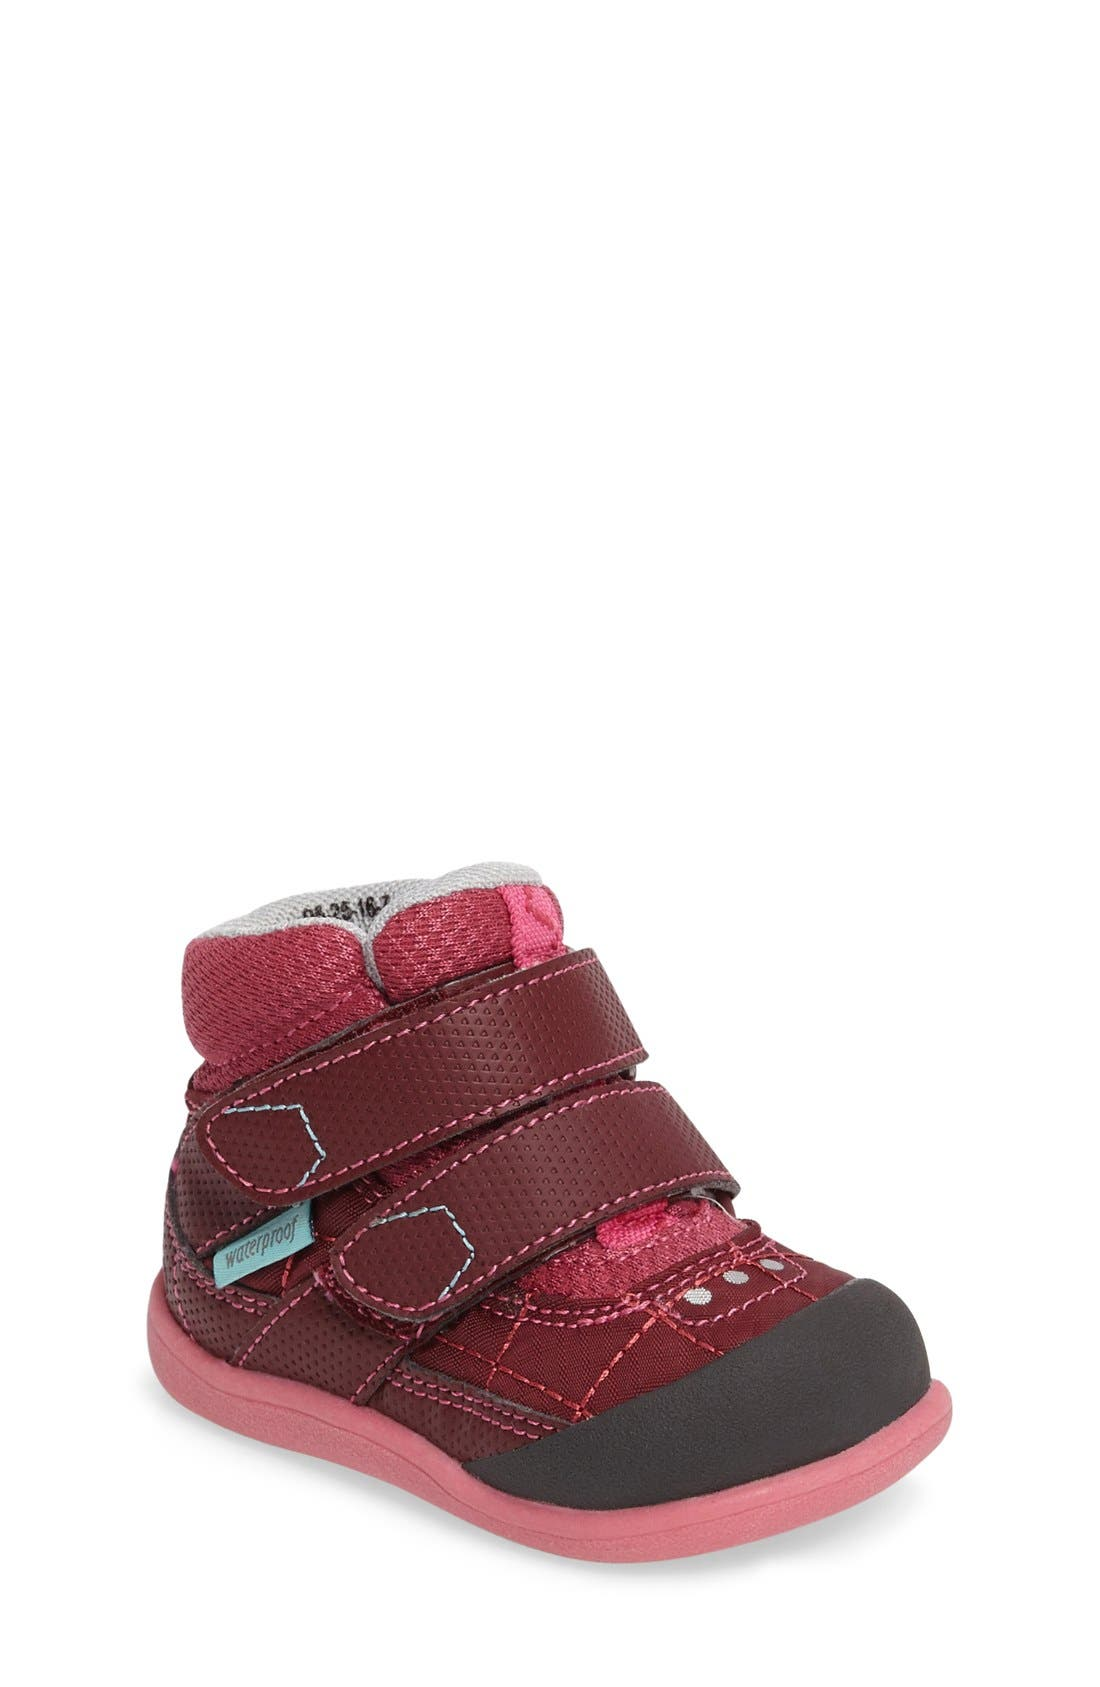 Alternate Image 1 Selected - See Kai Run Atlas Waterproof Boot (Baby, Walker & Toddler)